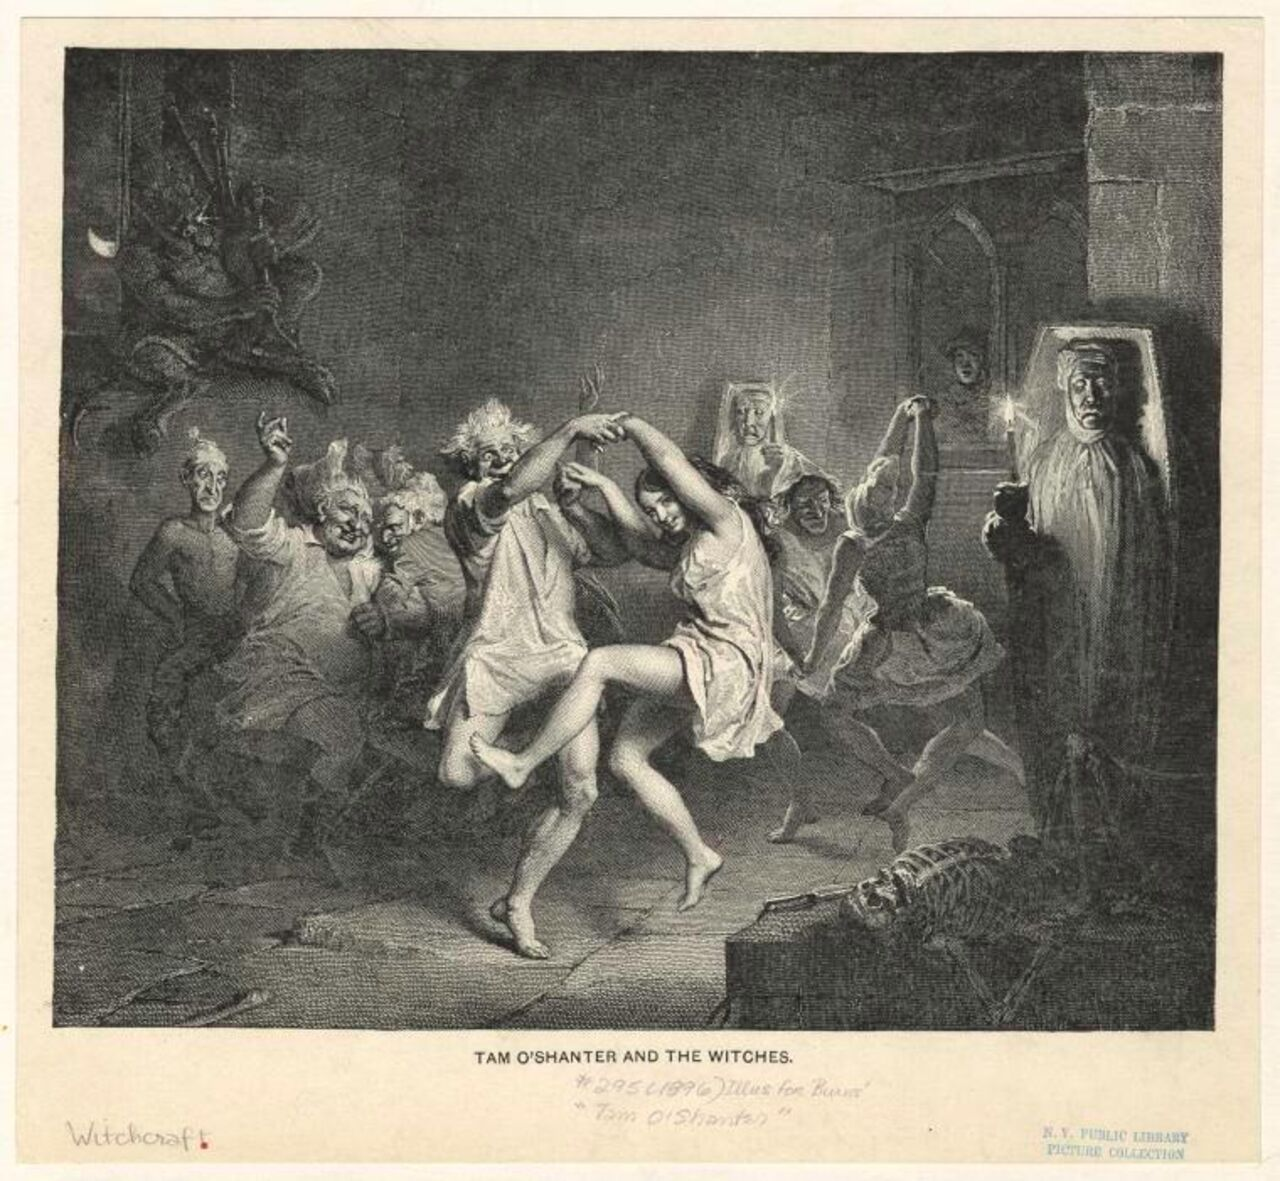 Black and white etching of a group of people dancing menacingly by candlelight.